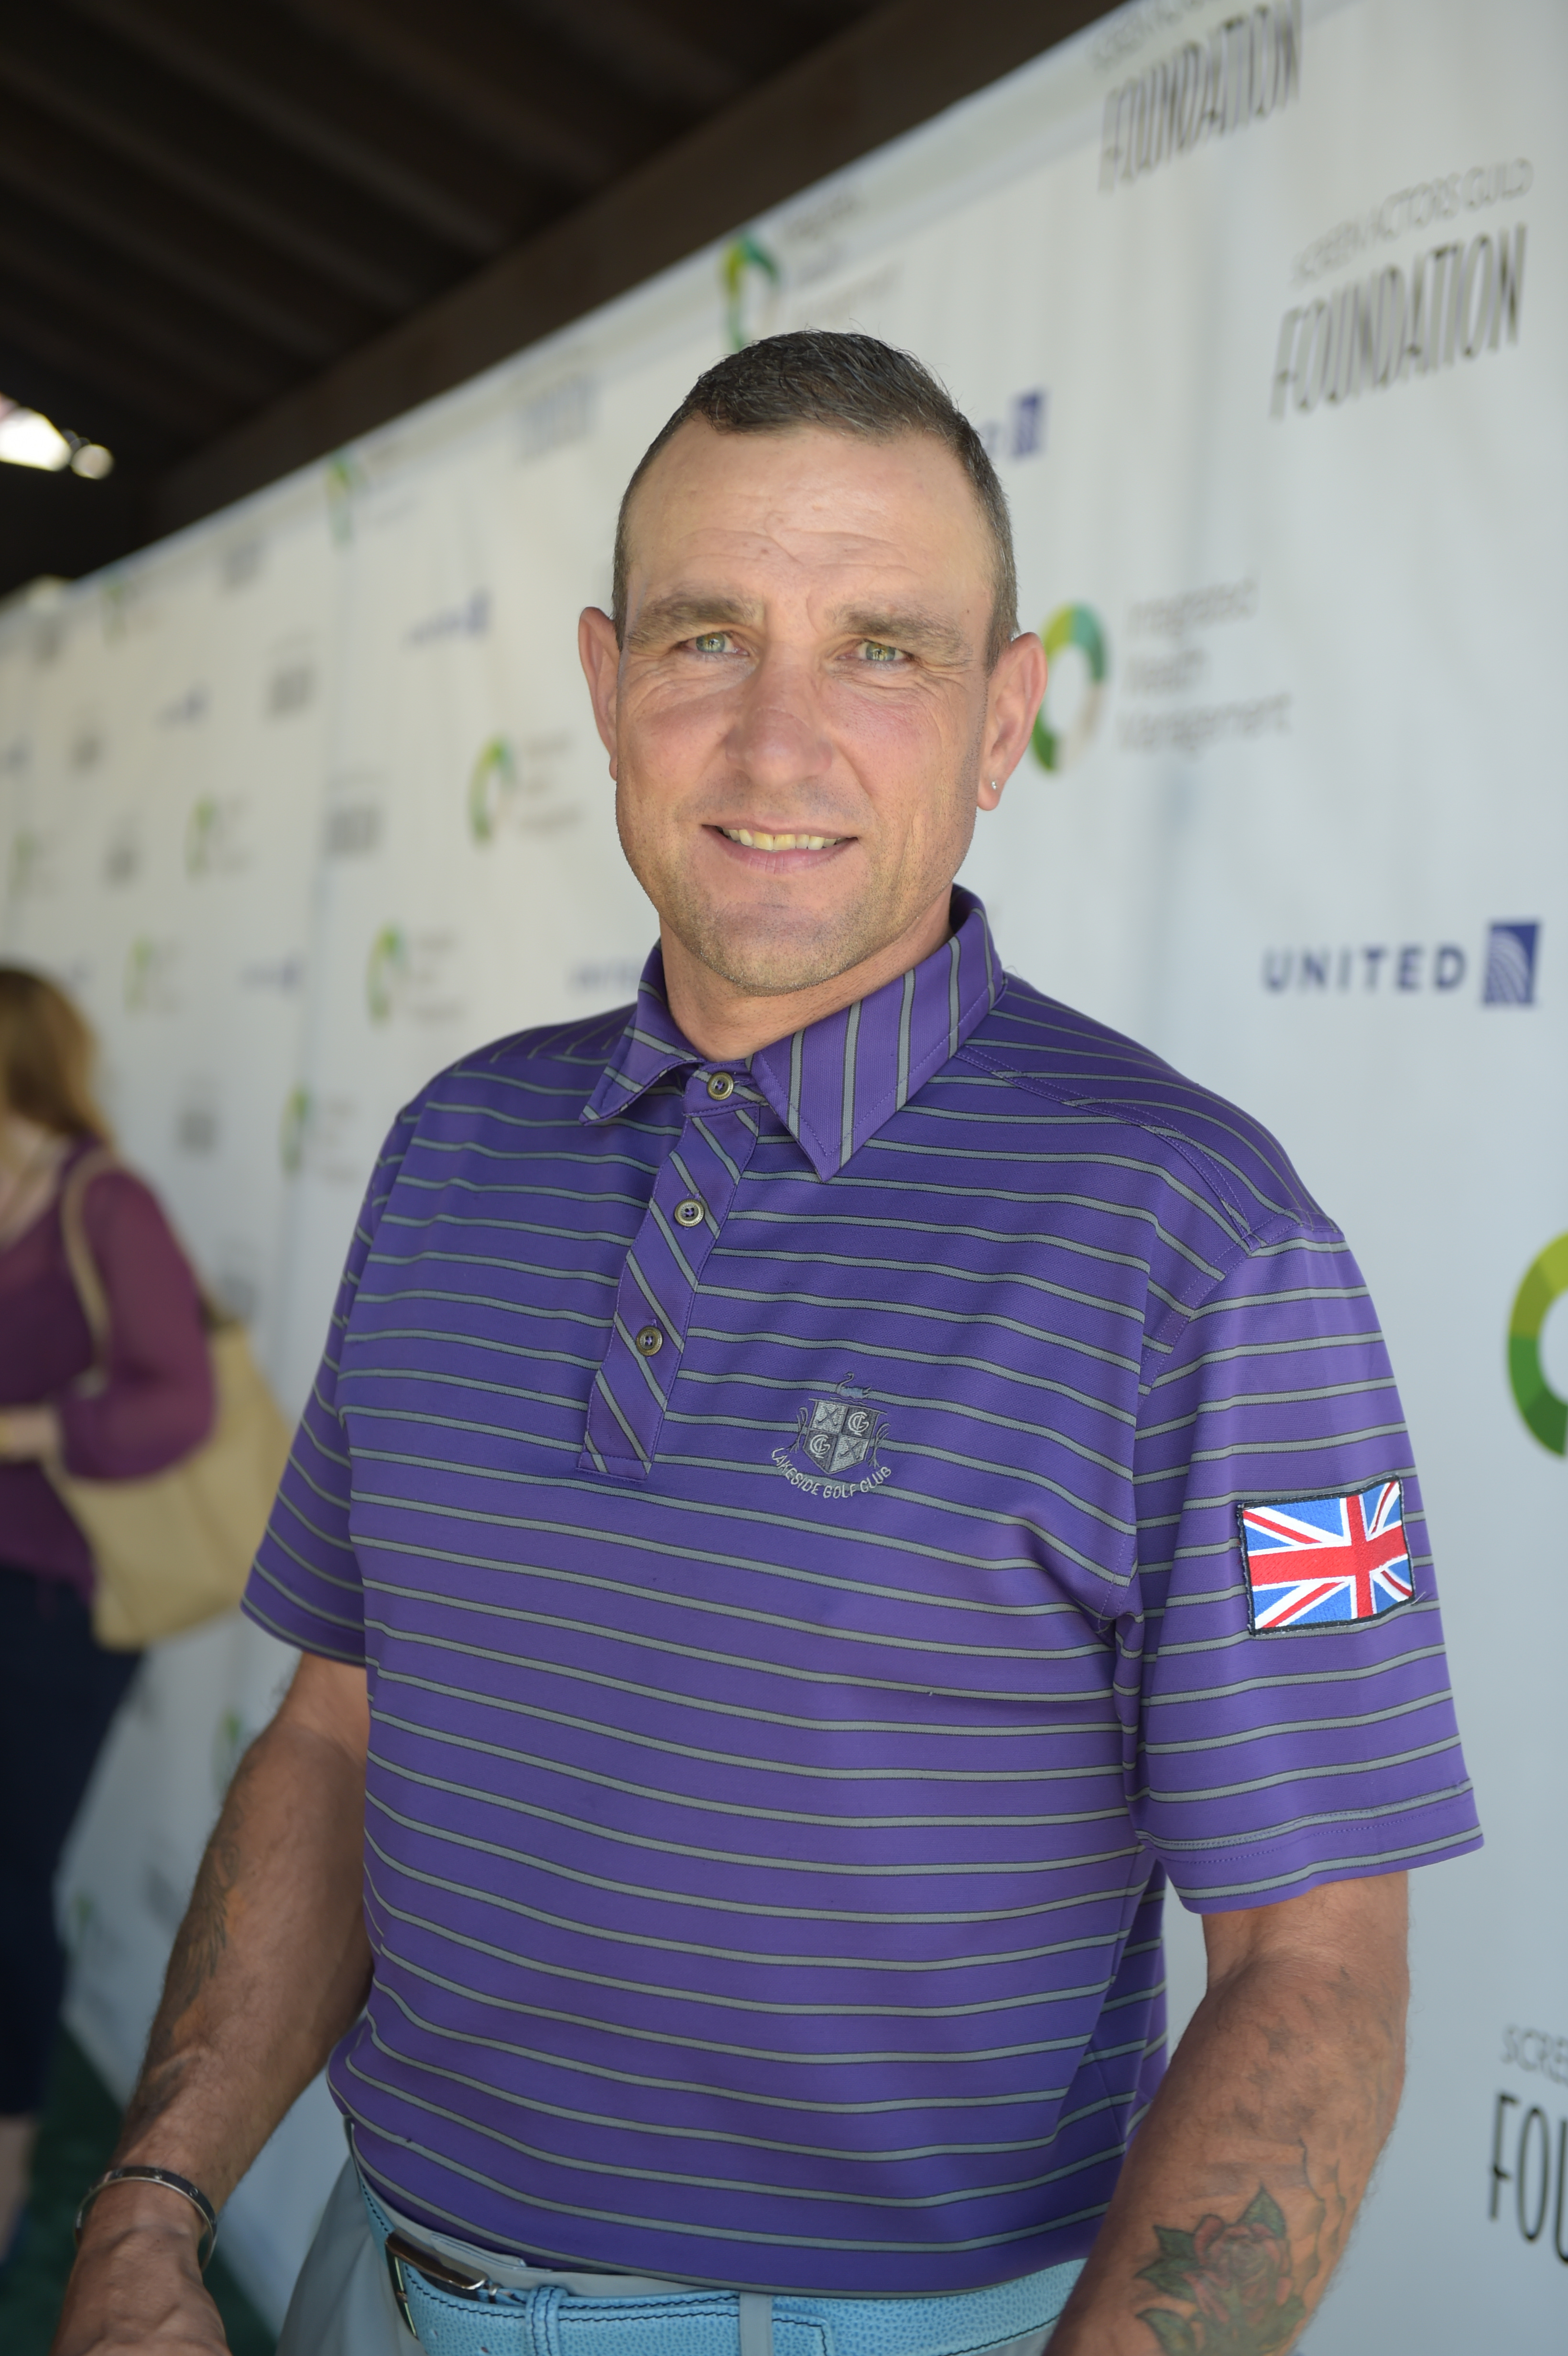 Vinnie Jones attends The Screen Actors Guild Foundation's 6th Annual Los Angeles Golf Classic on June 8, 2015 in Burbank, California. (Photo by Jason Kempin/Getty Images for The Screen Actors Guild Foundation)